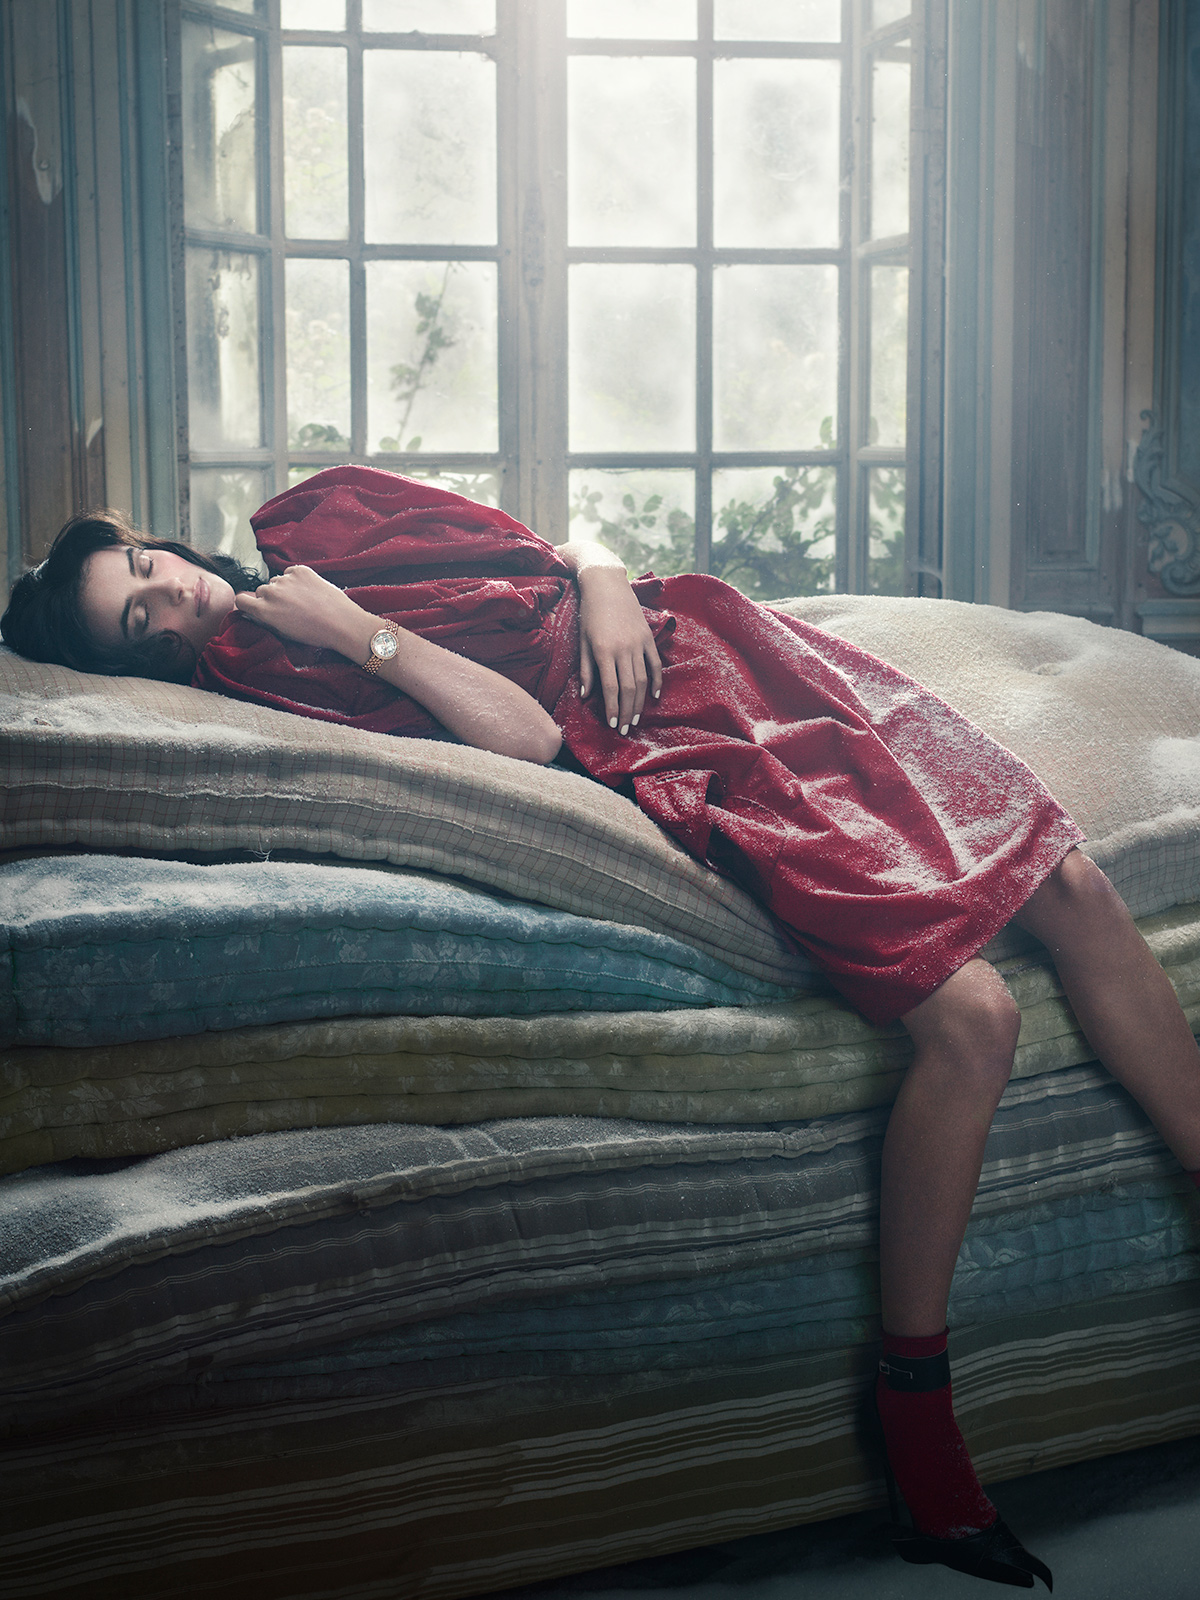 Dark haired woman in red dress sleeping elegantly on a pile of dusty mattress